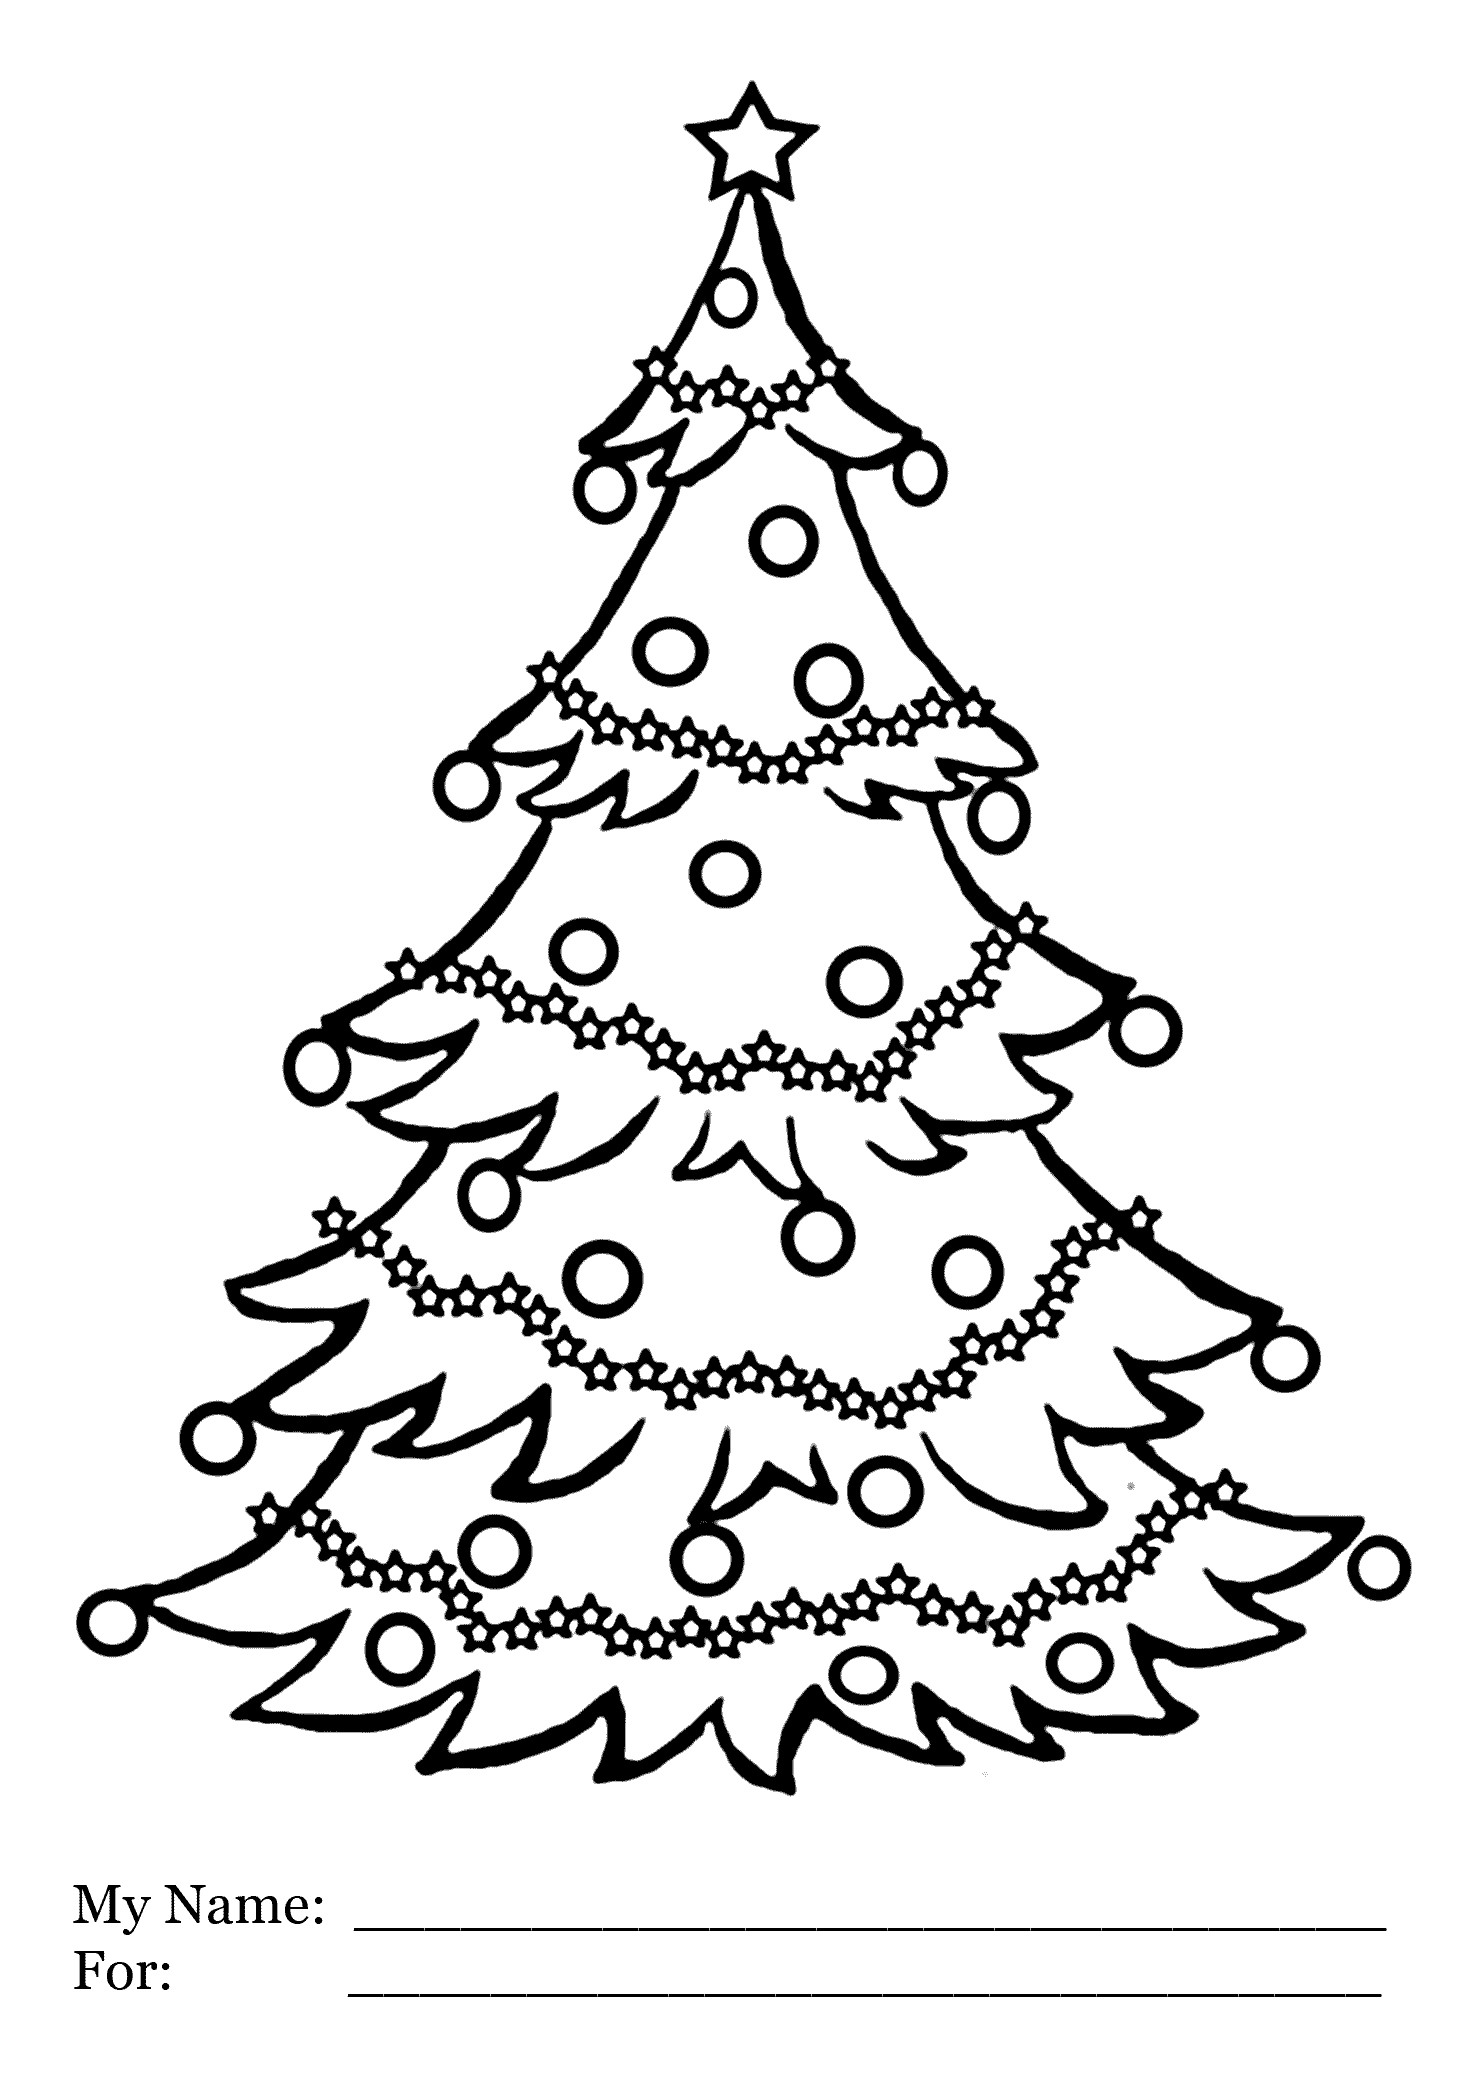 Christmas Tree Coloring Pages Printable With Of New For